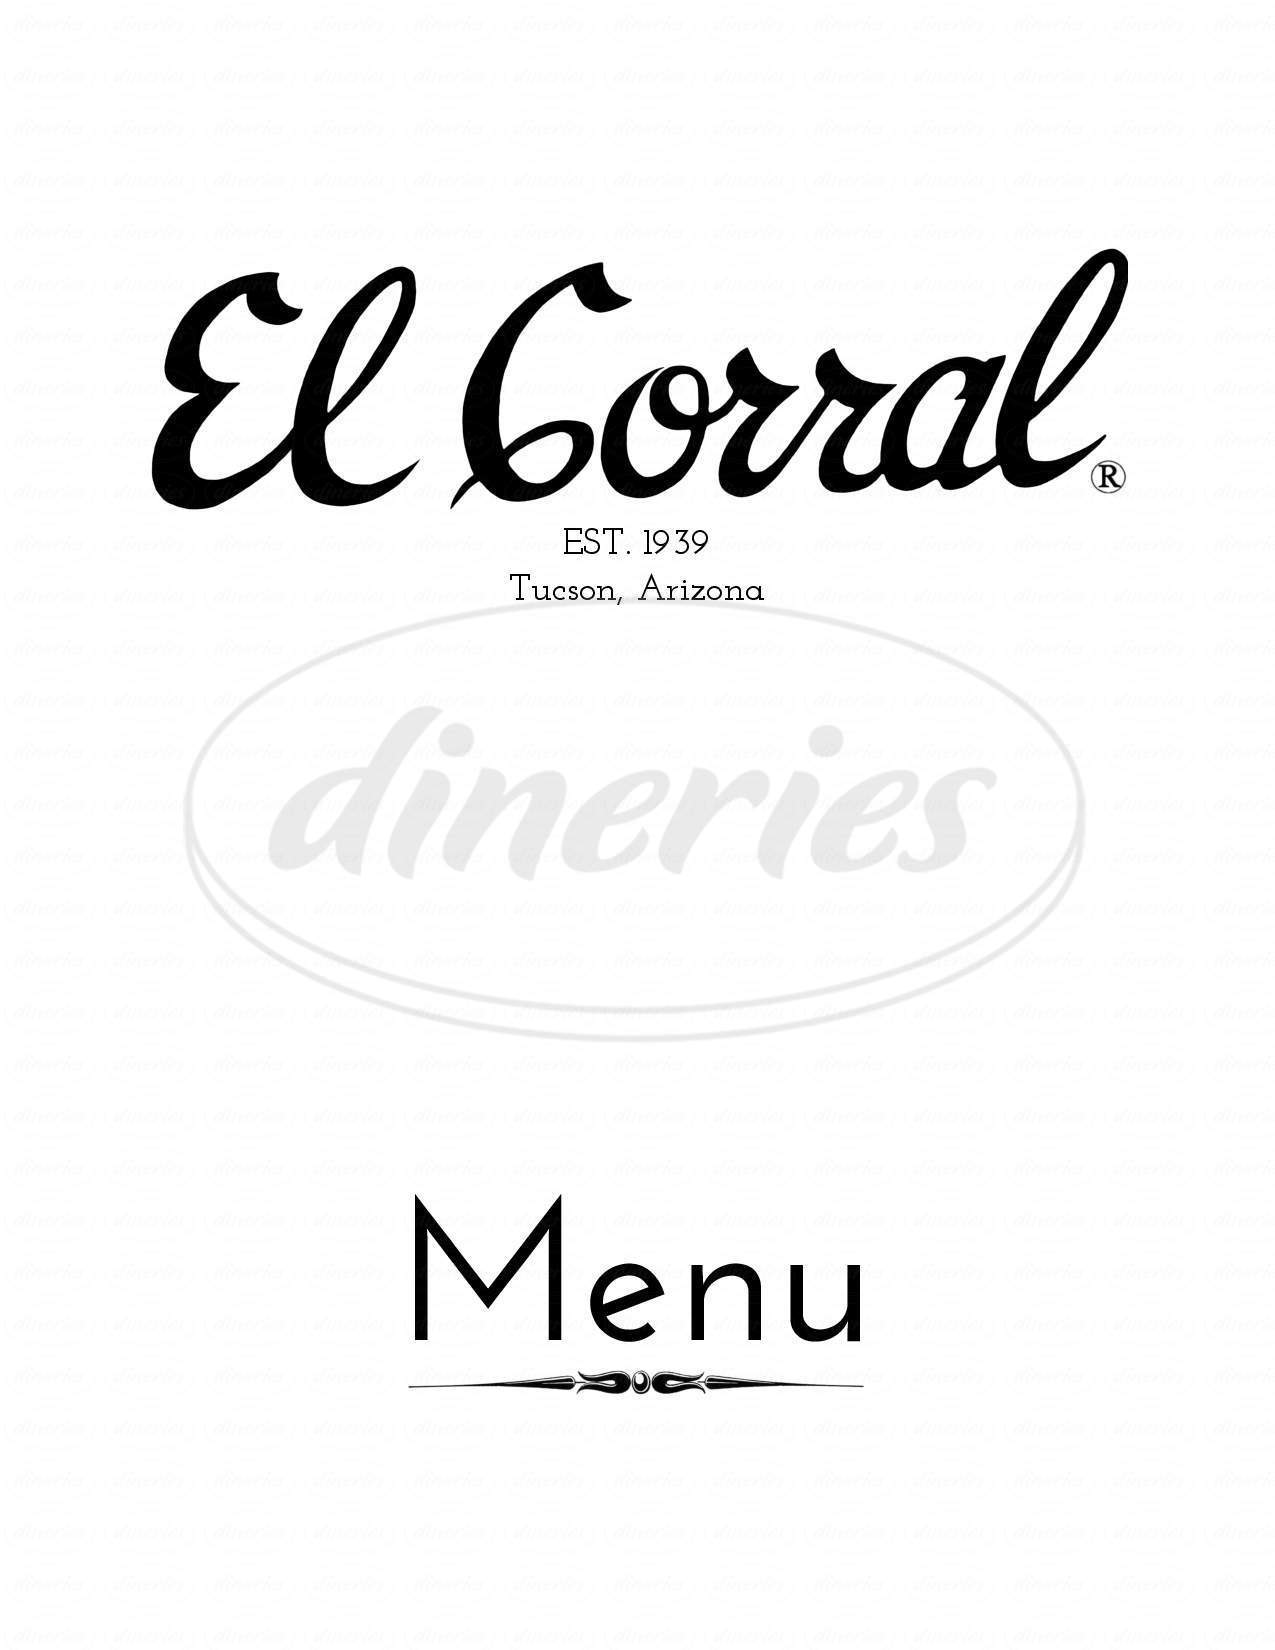 menu for El Corral